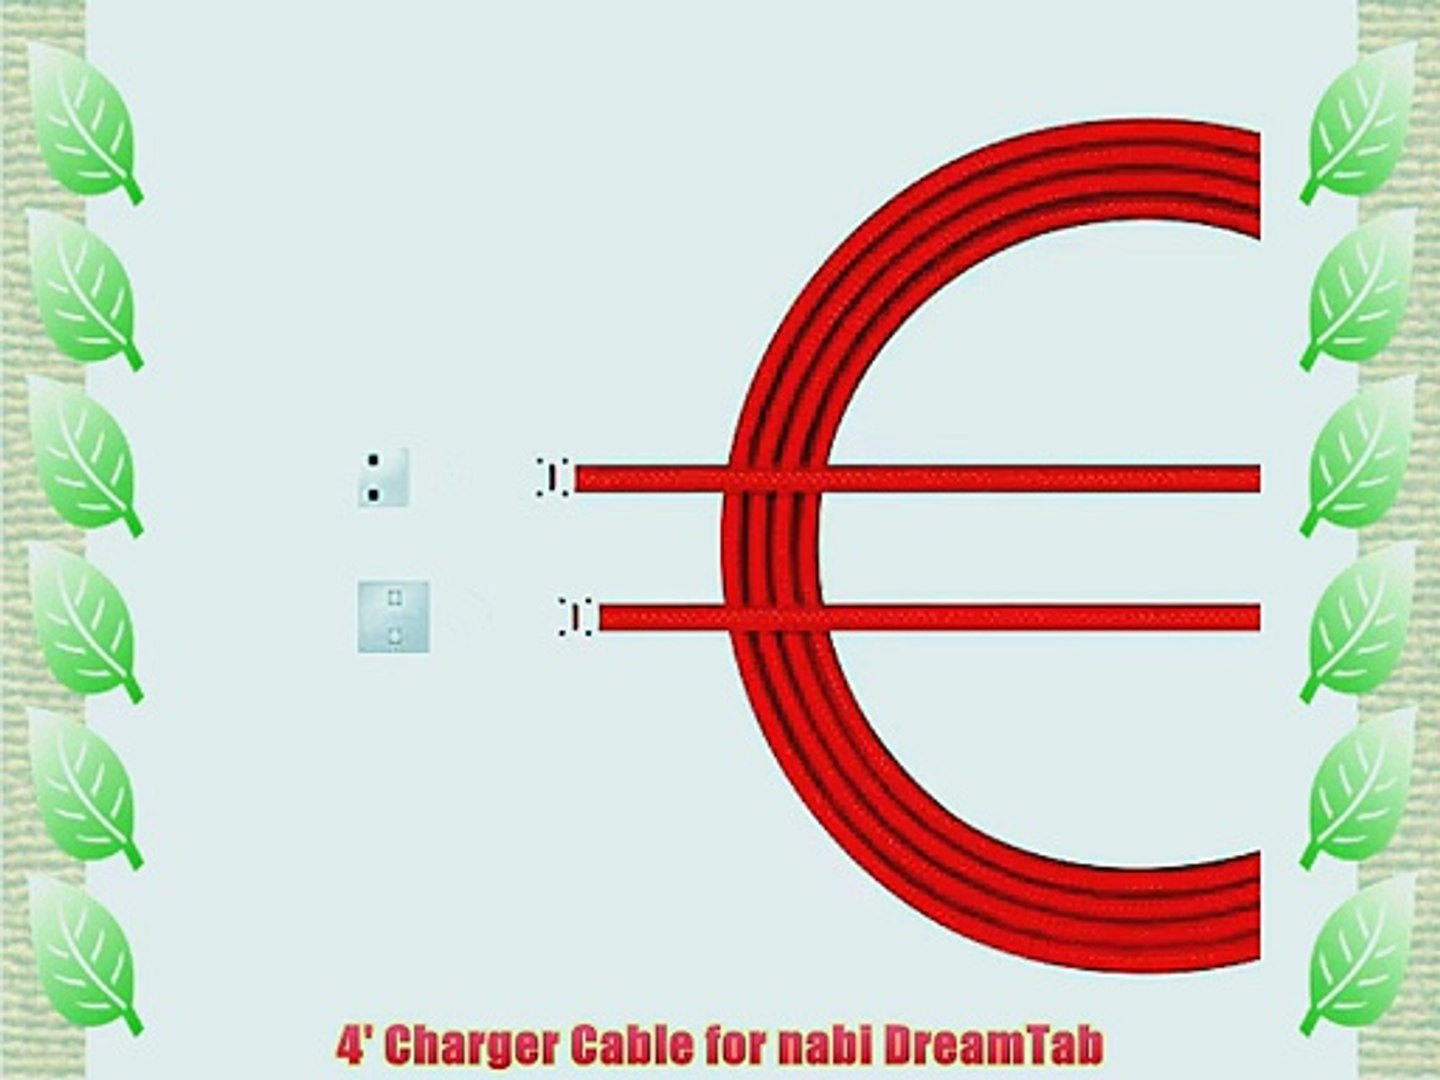 4' Charger Cable for nabi DreamTab